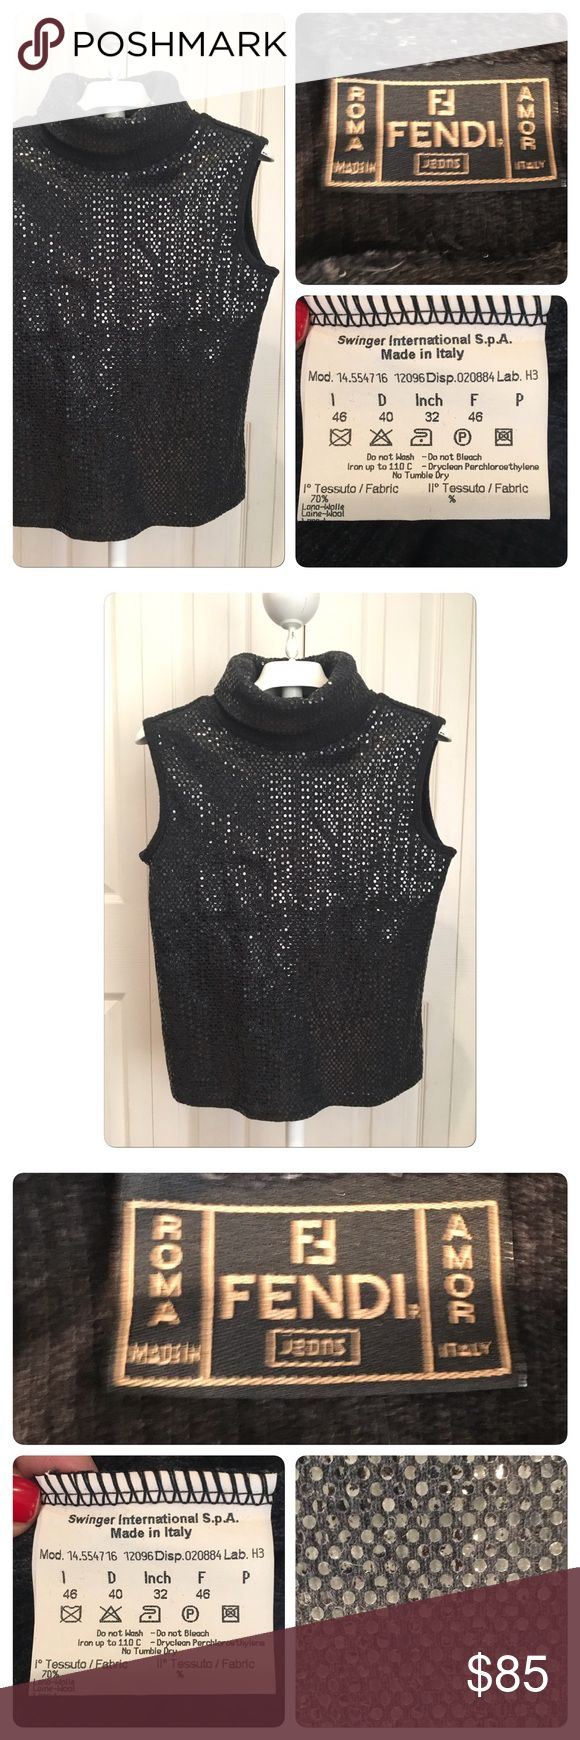 Fendi Sequin sleeveless sweater Fendi Sequin sleeveless sweater. Charcoal gray wool sequent front. Worn once no holes stains rips tears pulls or pilling. Best for Size Small or medium .. please request measurements Fendi Sweaters